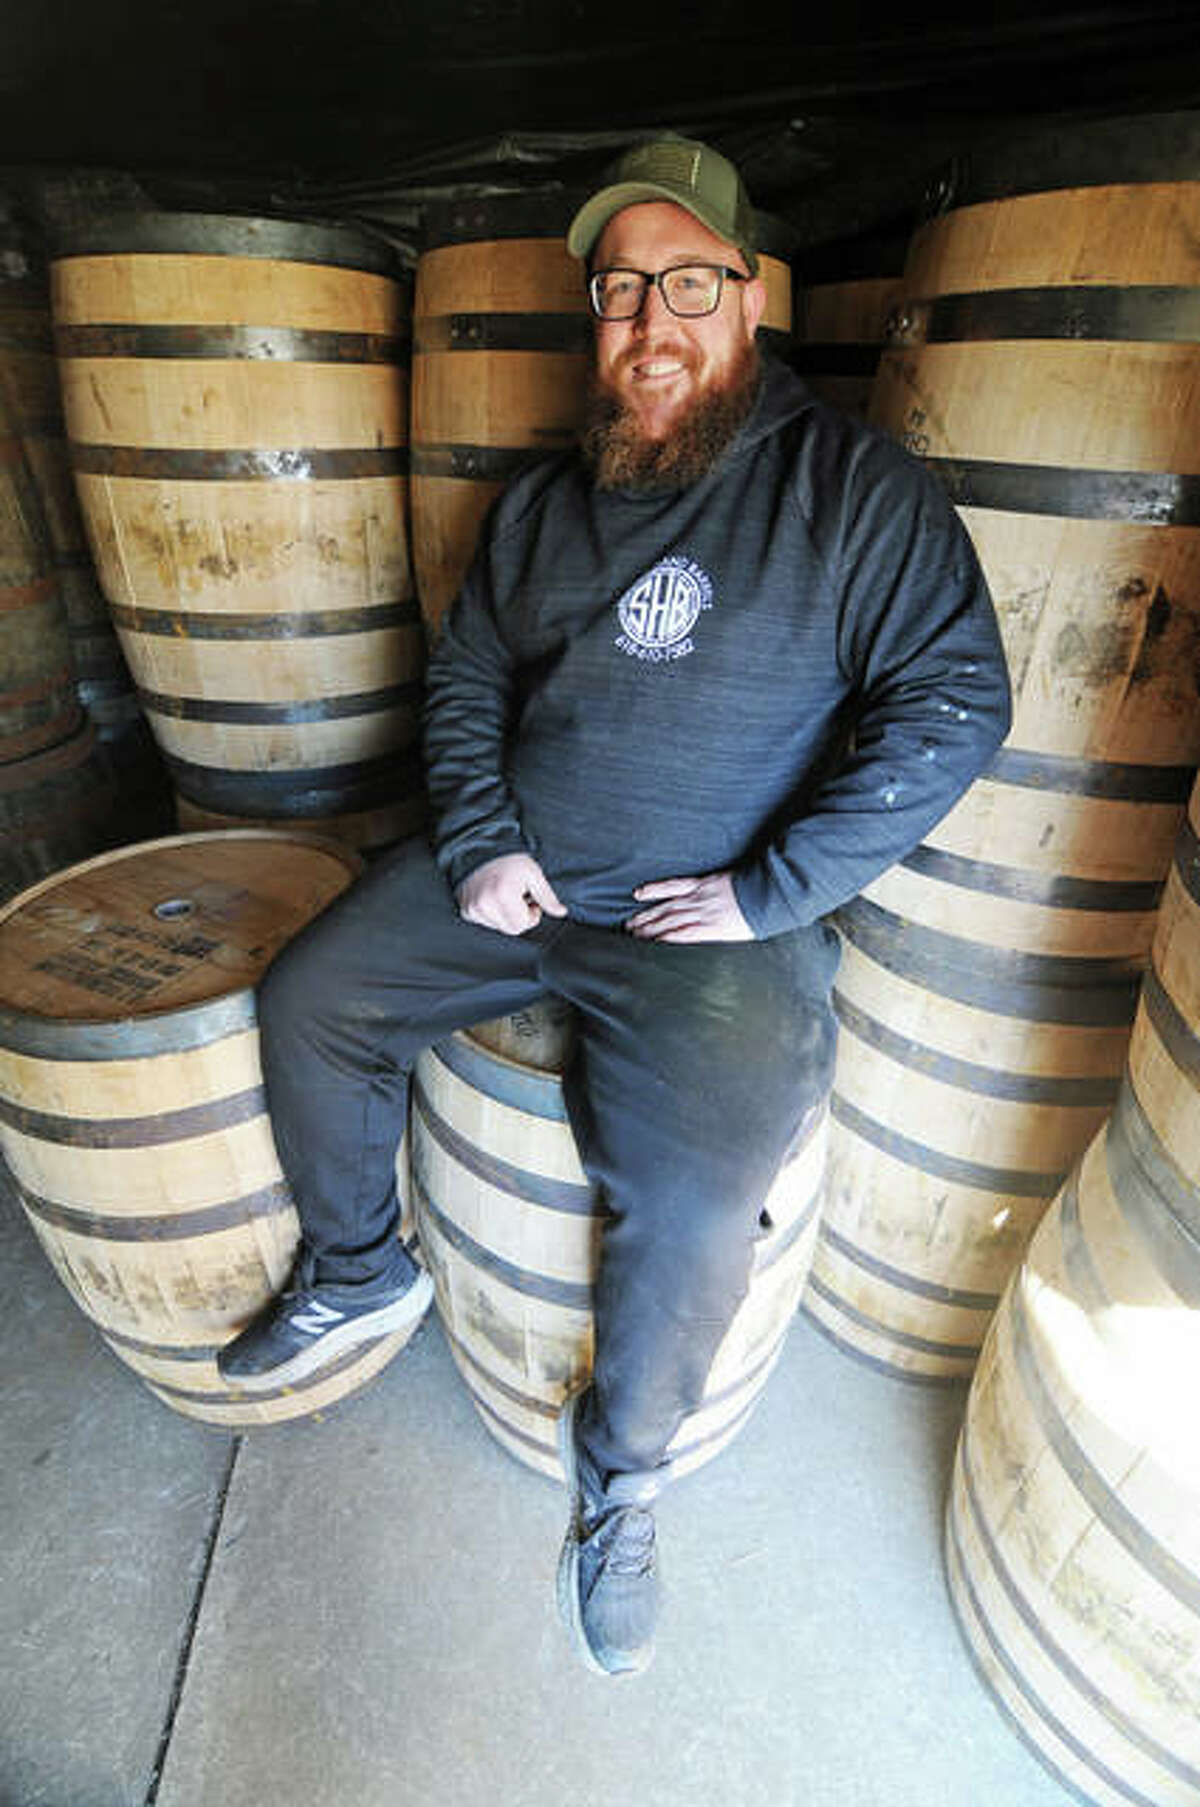 Ryan Jenkins, the owner of Second Hand Barrels in Godfrey, sits amid his supply of white oak barrels waiting to be transformed.